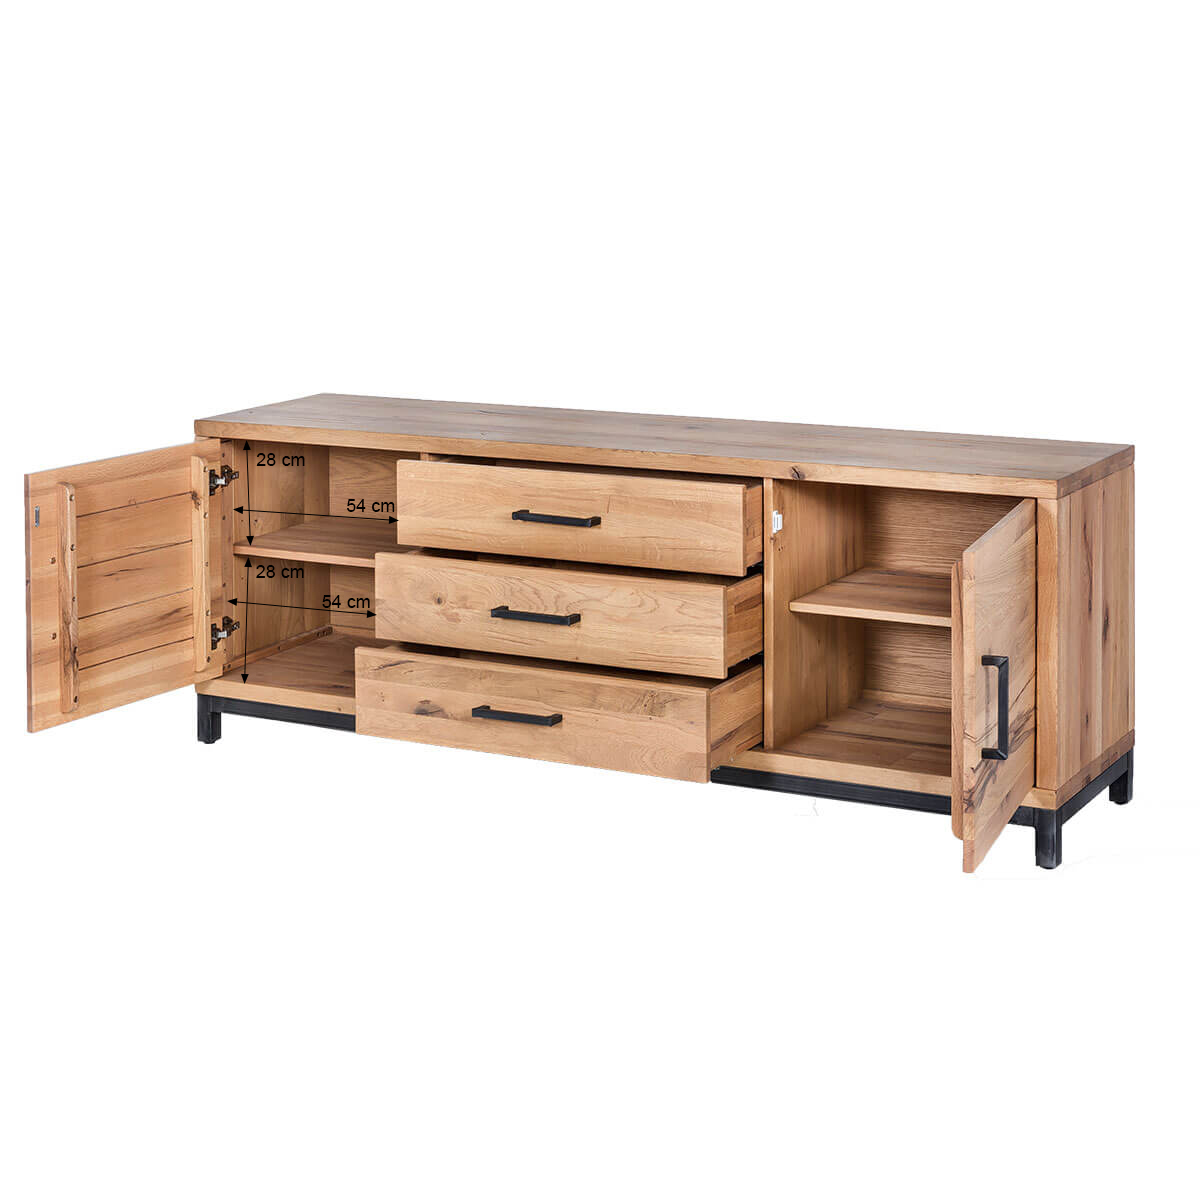 sideboard eiche massiv 200 cm kommode wildeiche schrank massivholz balkeneiche ebay. Black Bedroom Furniture Sets. Home Design Ideas